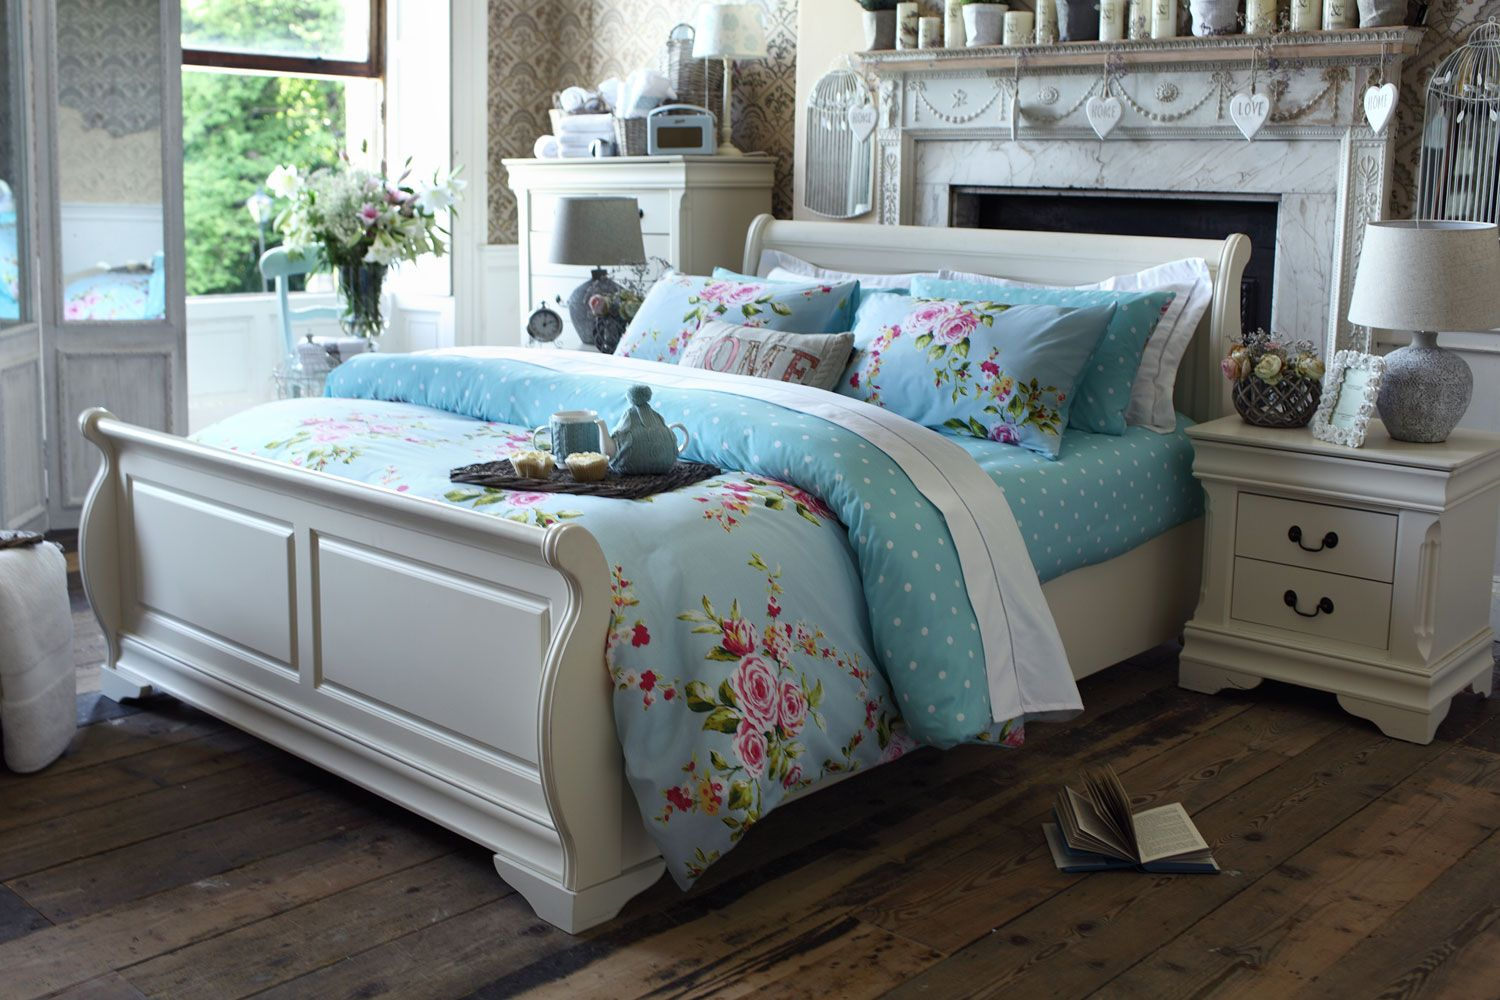 Chardonnay King Bed Frame 5ft From Harvey Norman Ireland